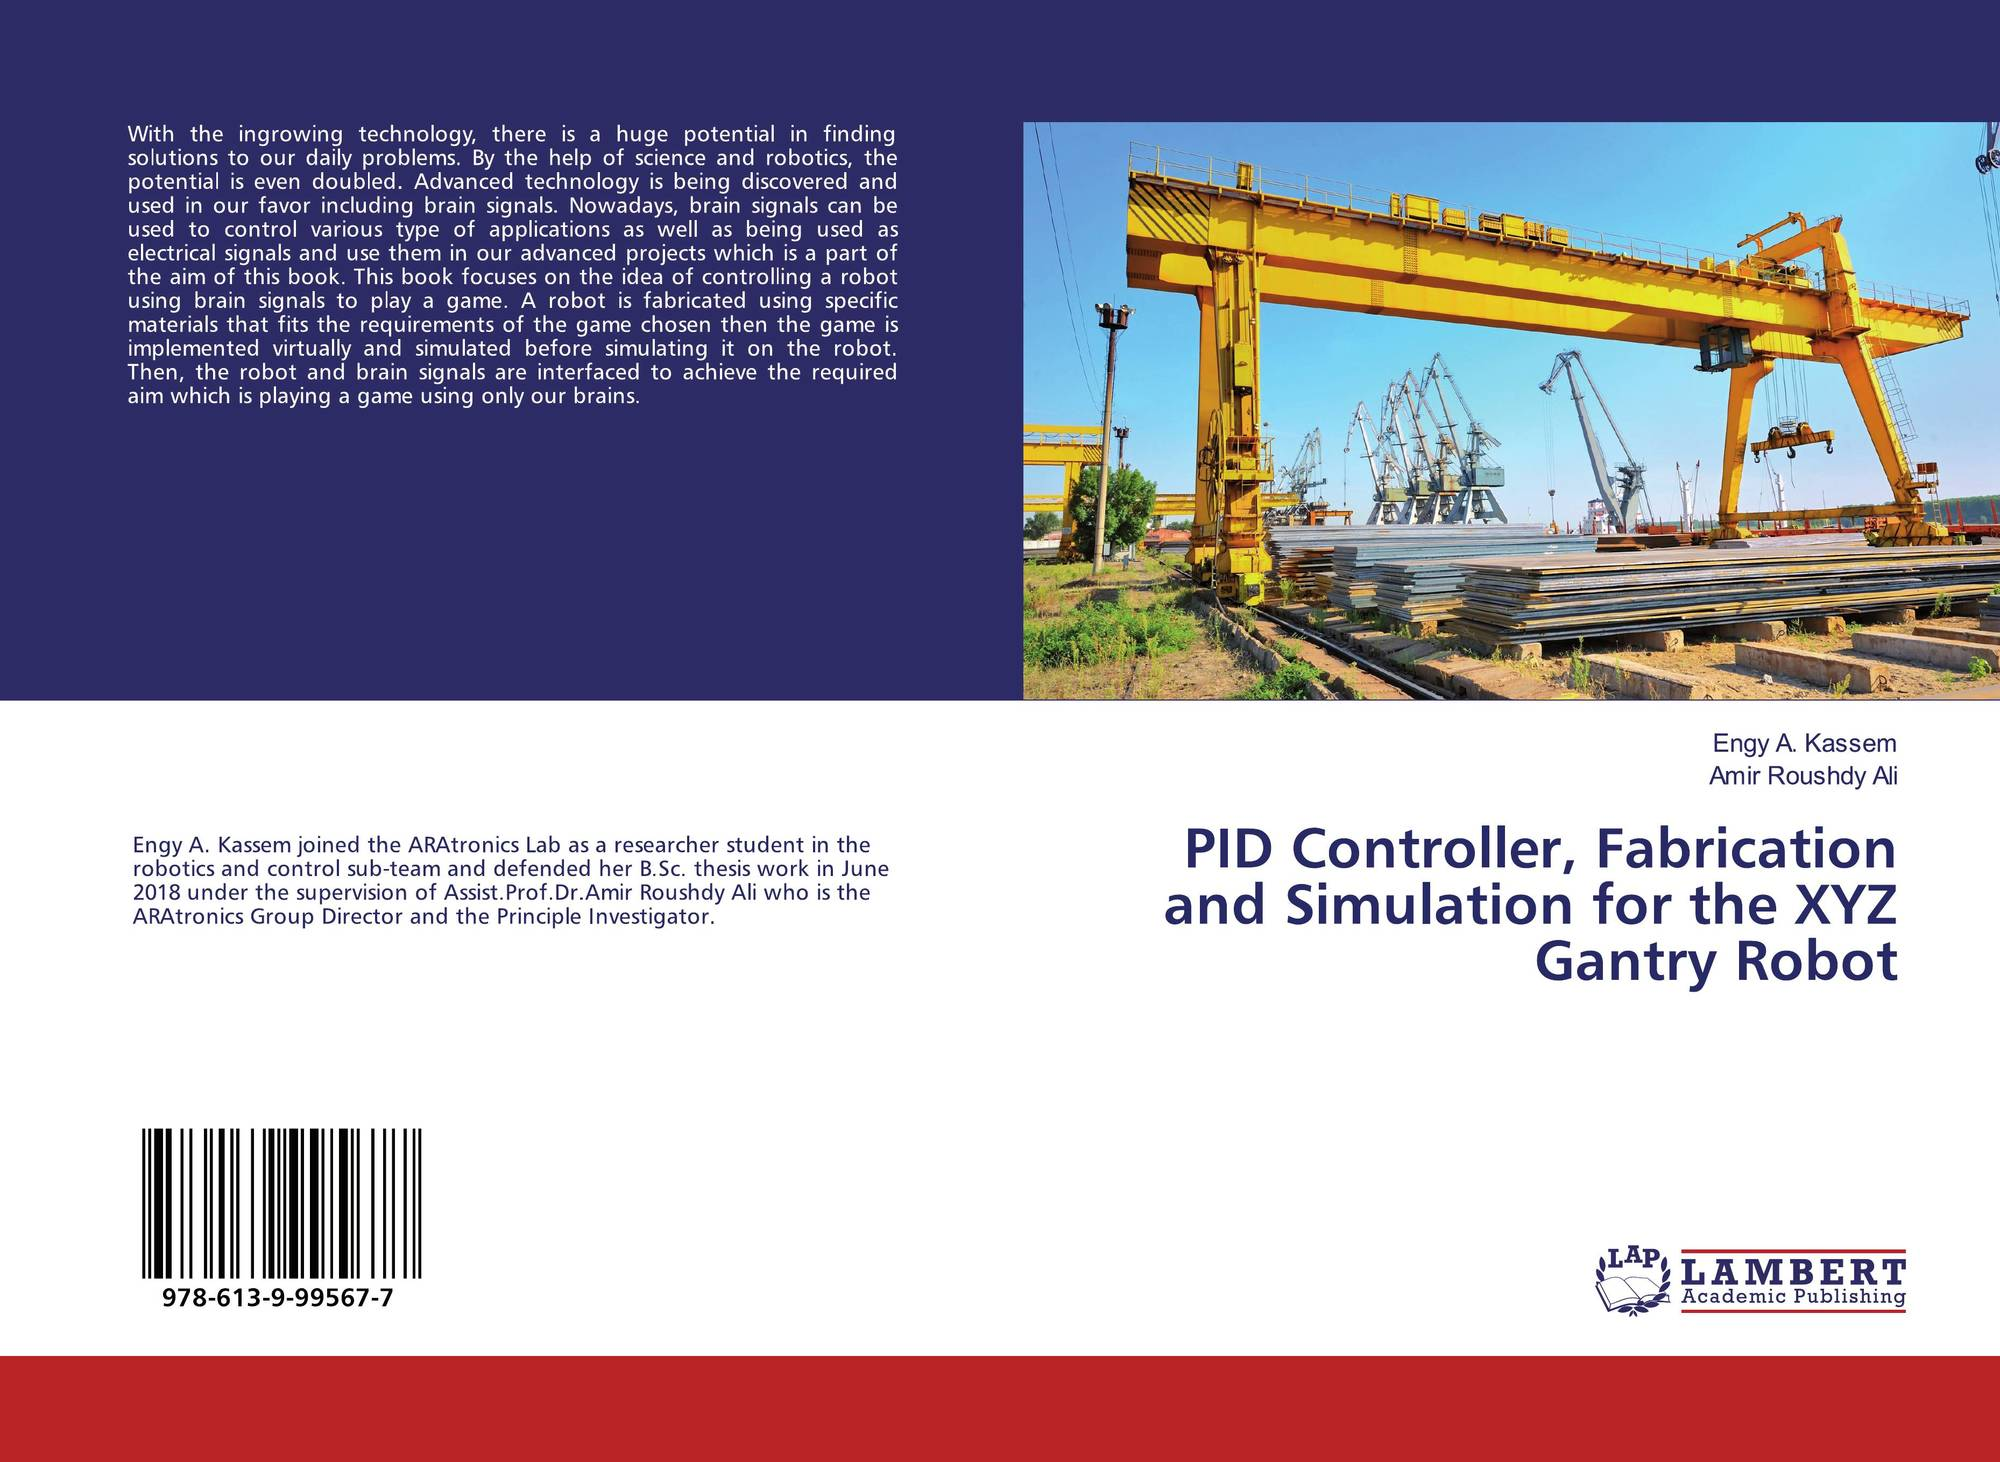 PID Controller, Fabrication and Simulation for the XYZ